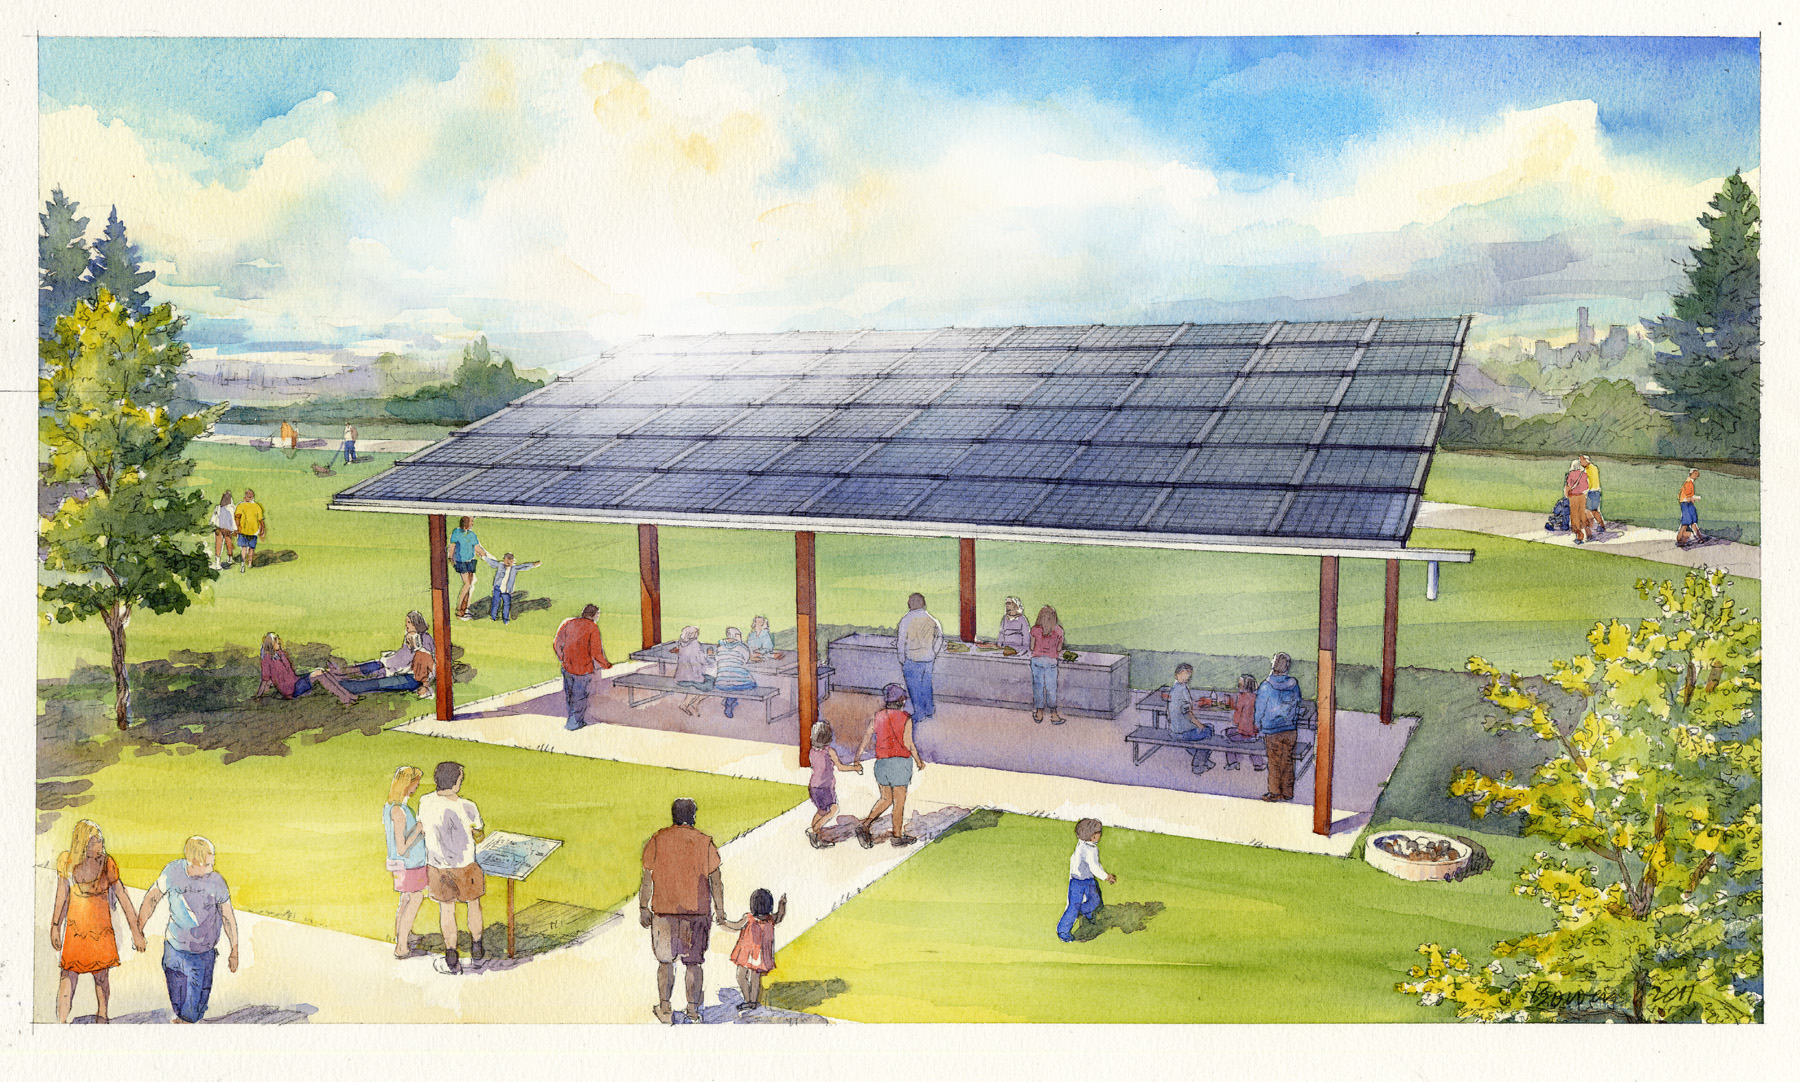 Coming To Seattle Picnic Shelters With Solar Panels